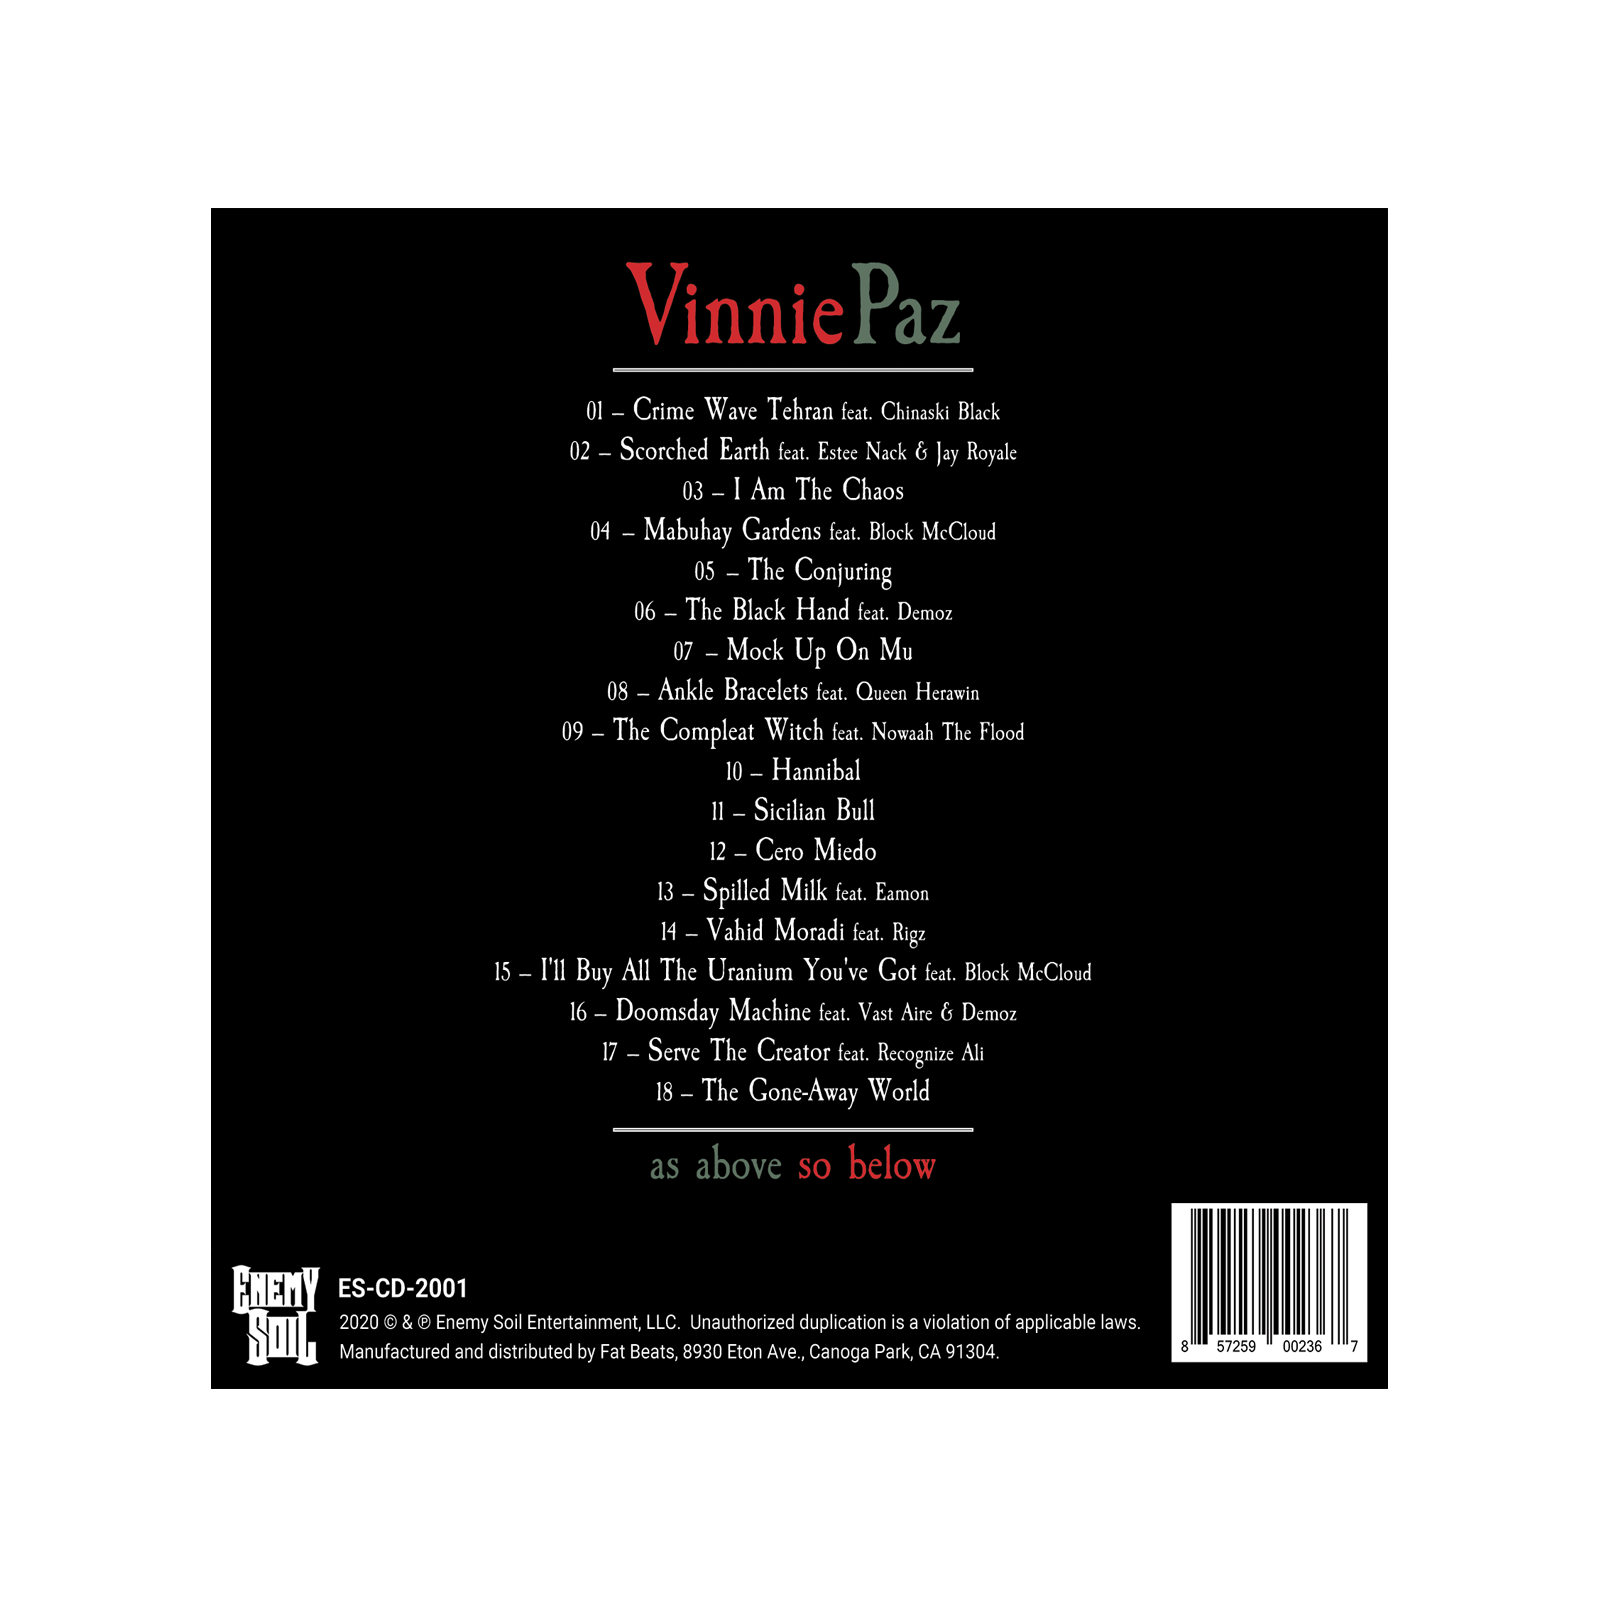 Vinnie Paz - As Above So Below - Gatefold 2LP